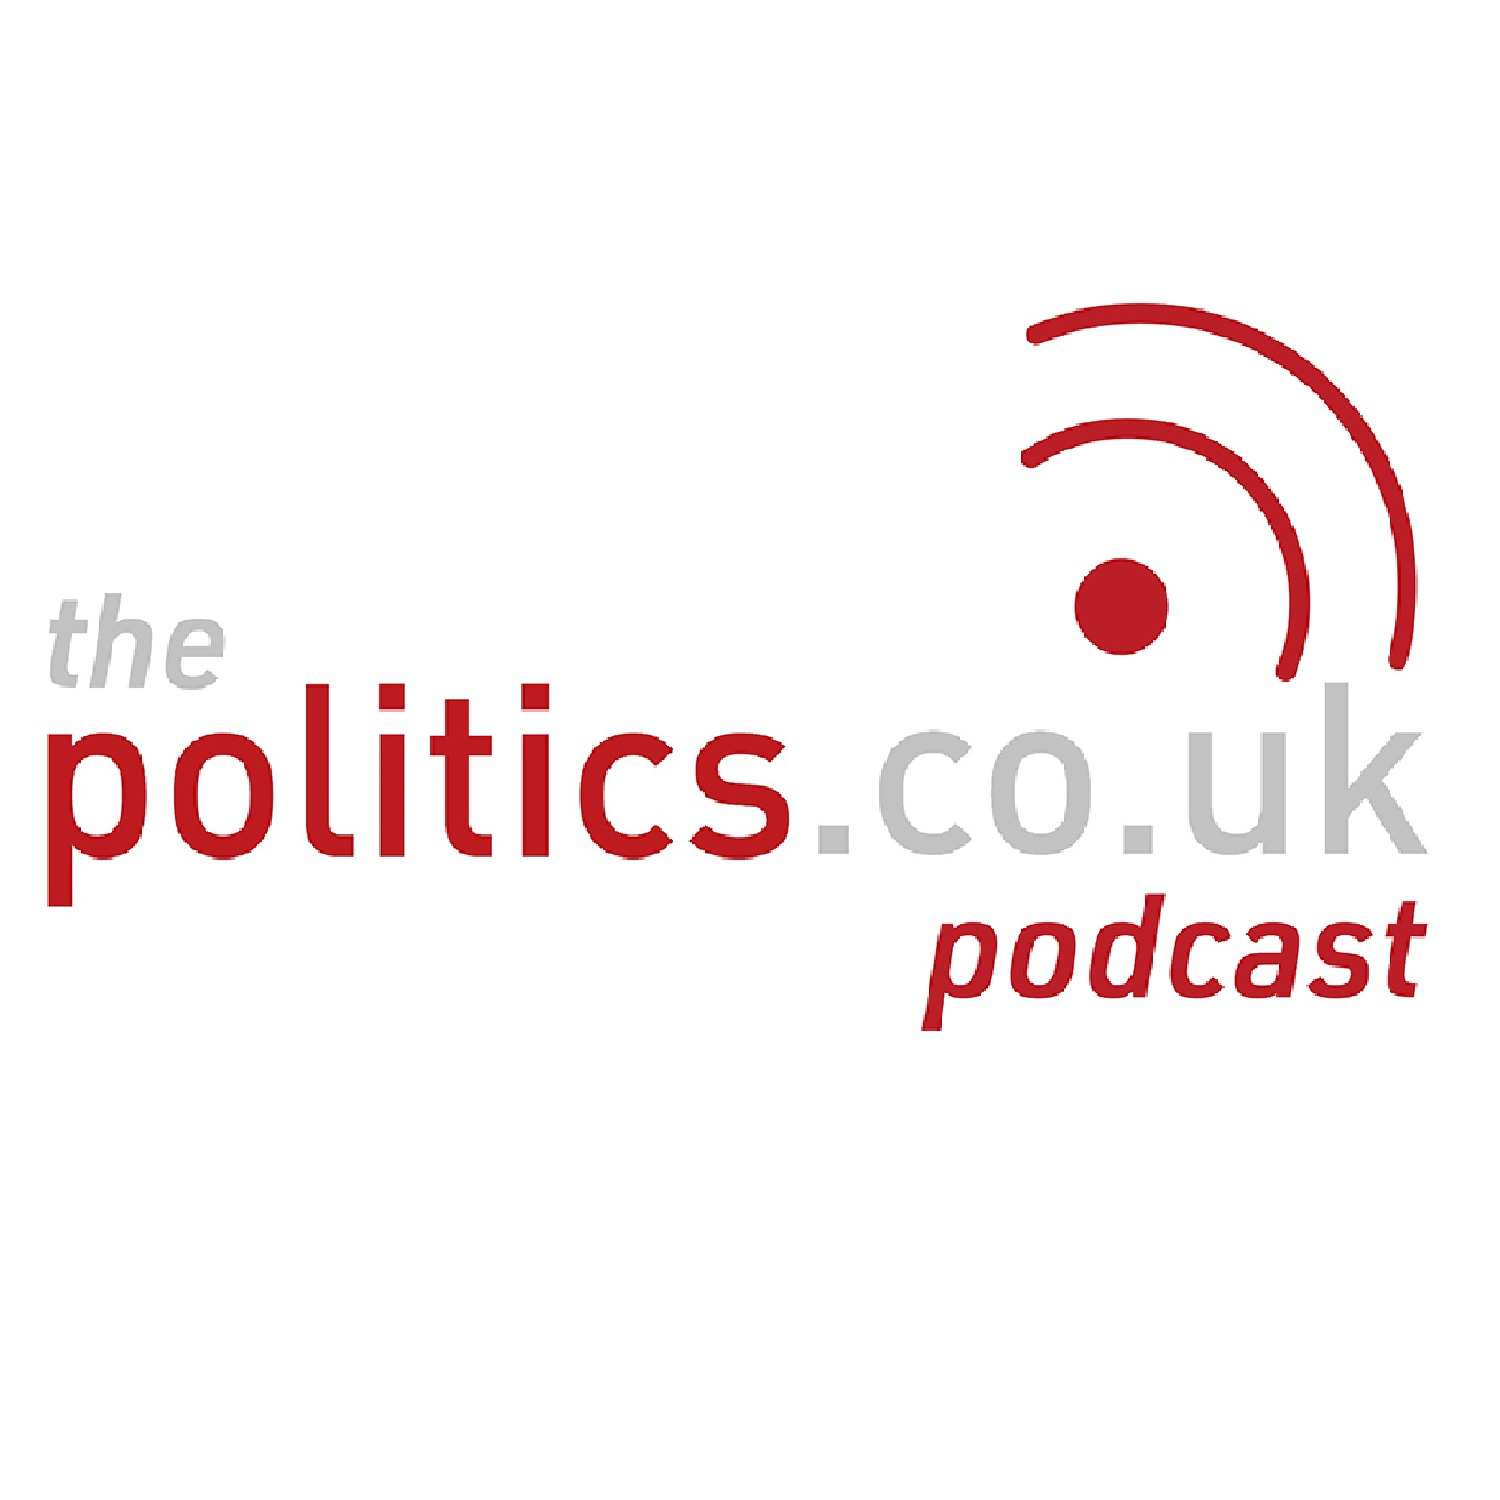 The Politics.co.uk Podcast - voter ID trials